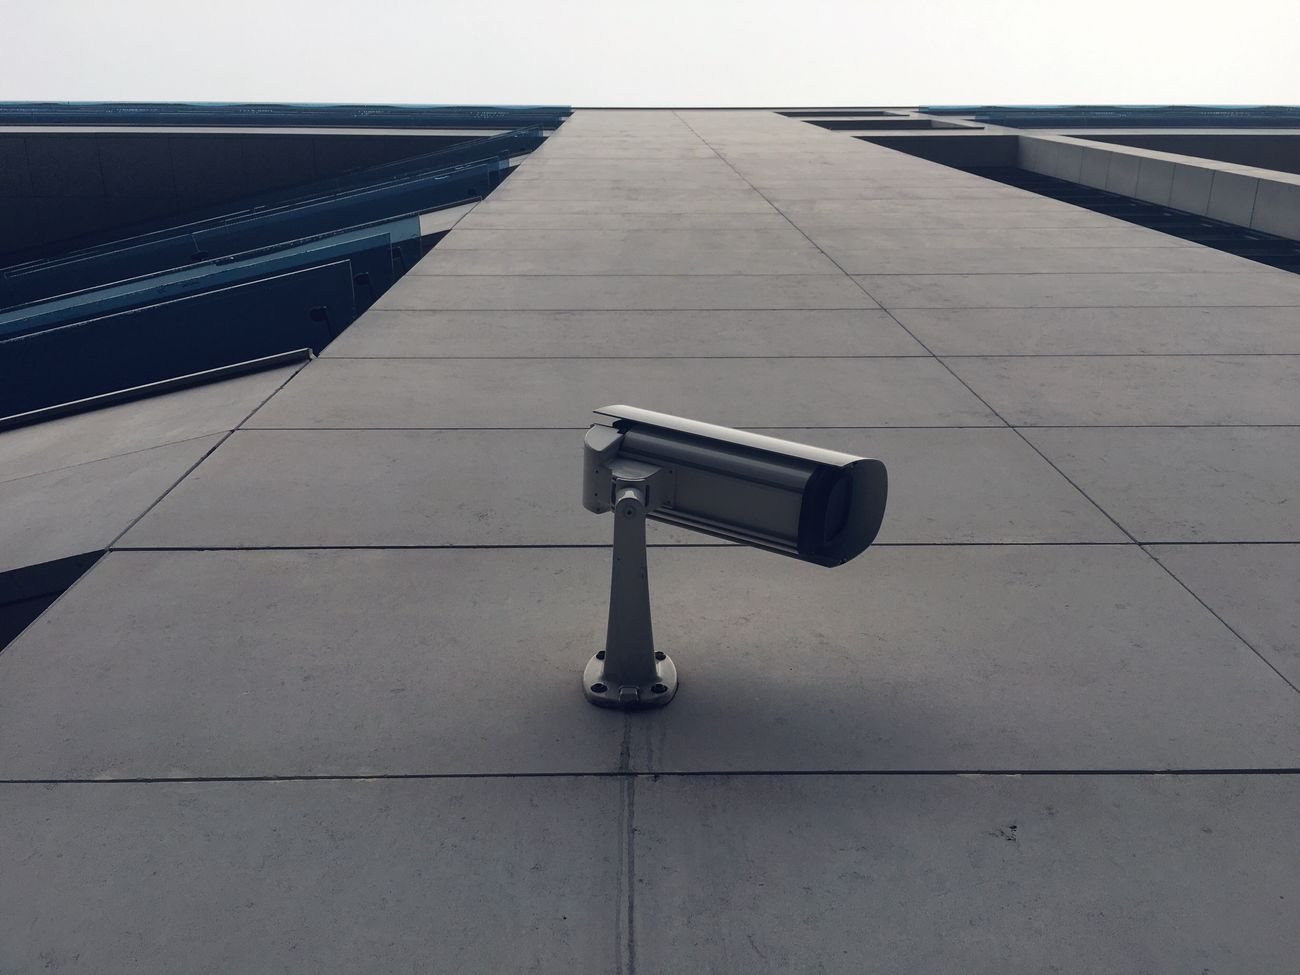 """""""Up here"""" Outdoors No People Building Exterior Day Architecture Sky Camera Germany Technology Big Brother überwachung Monitoring überwachungskamera Communication"""